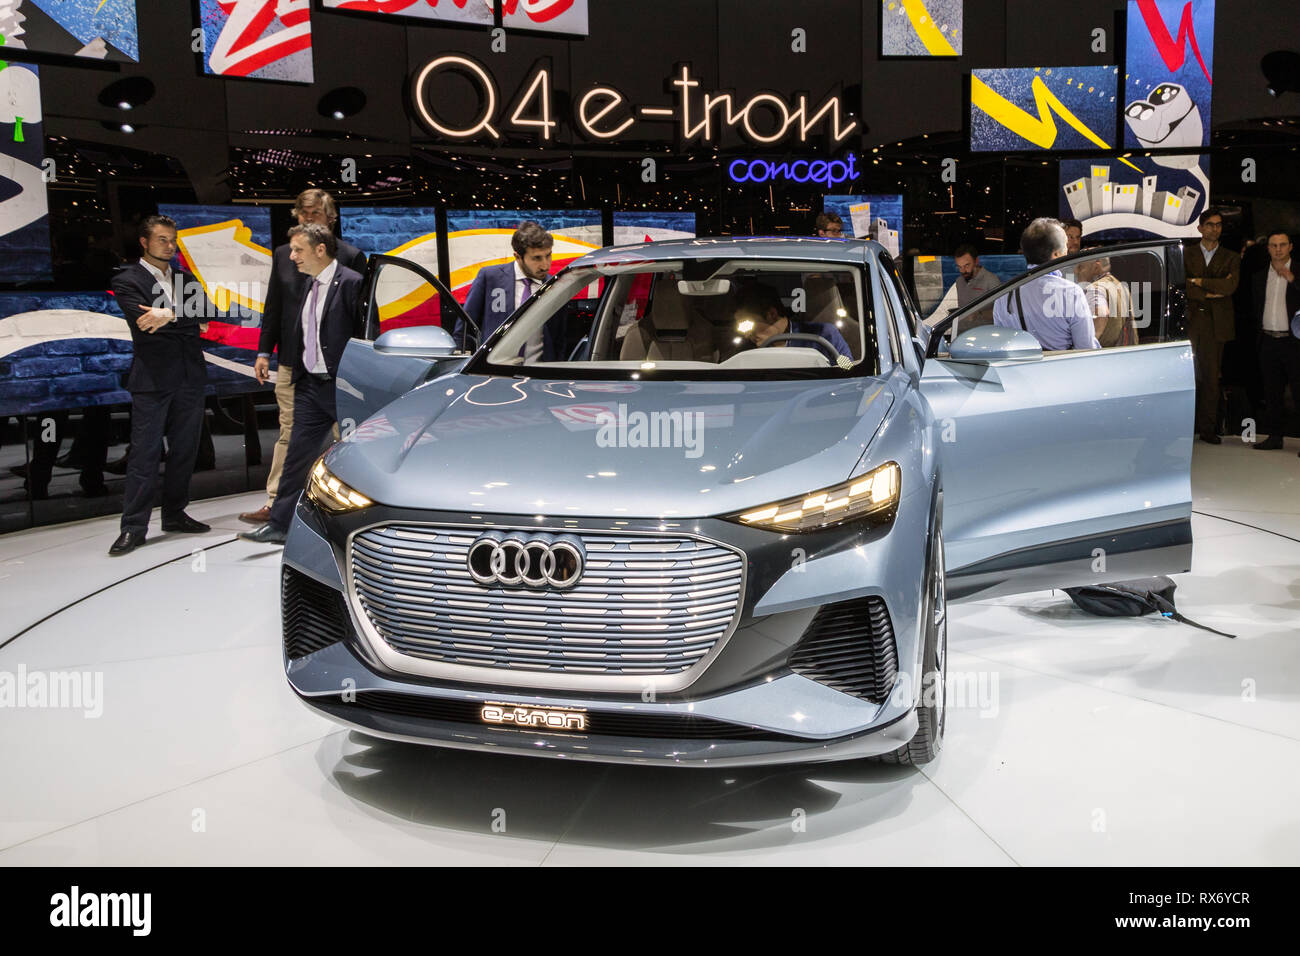 Cuv Car Geneva Switzerland March 5 2019 Audi Q4 E Tron Electric Cuv